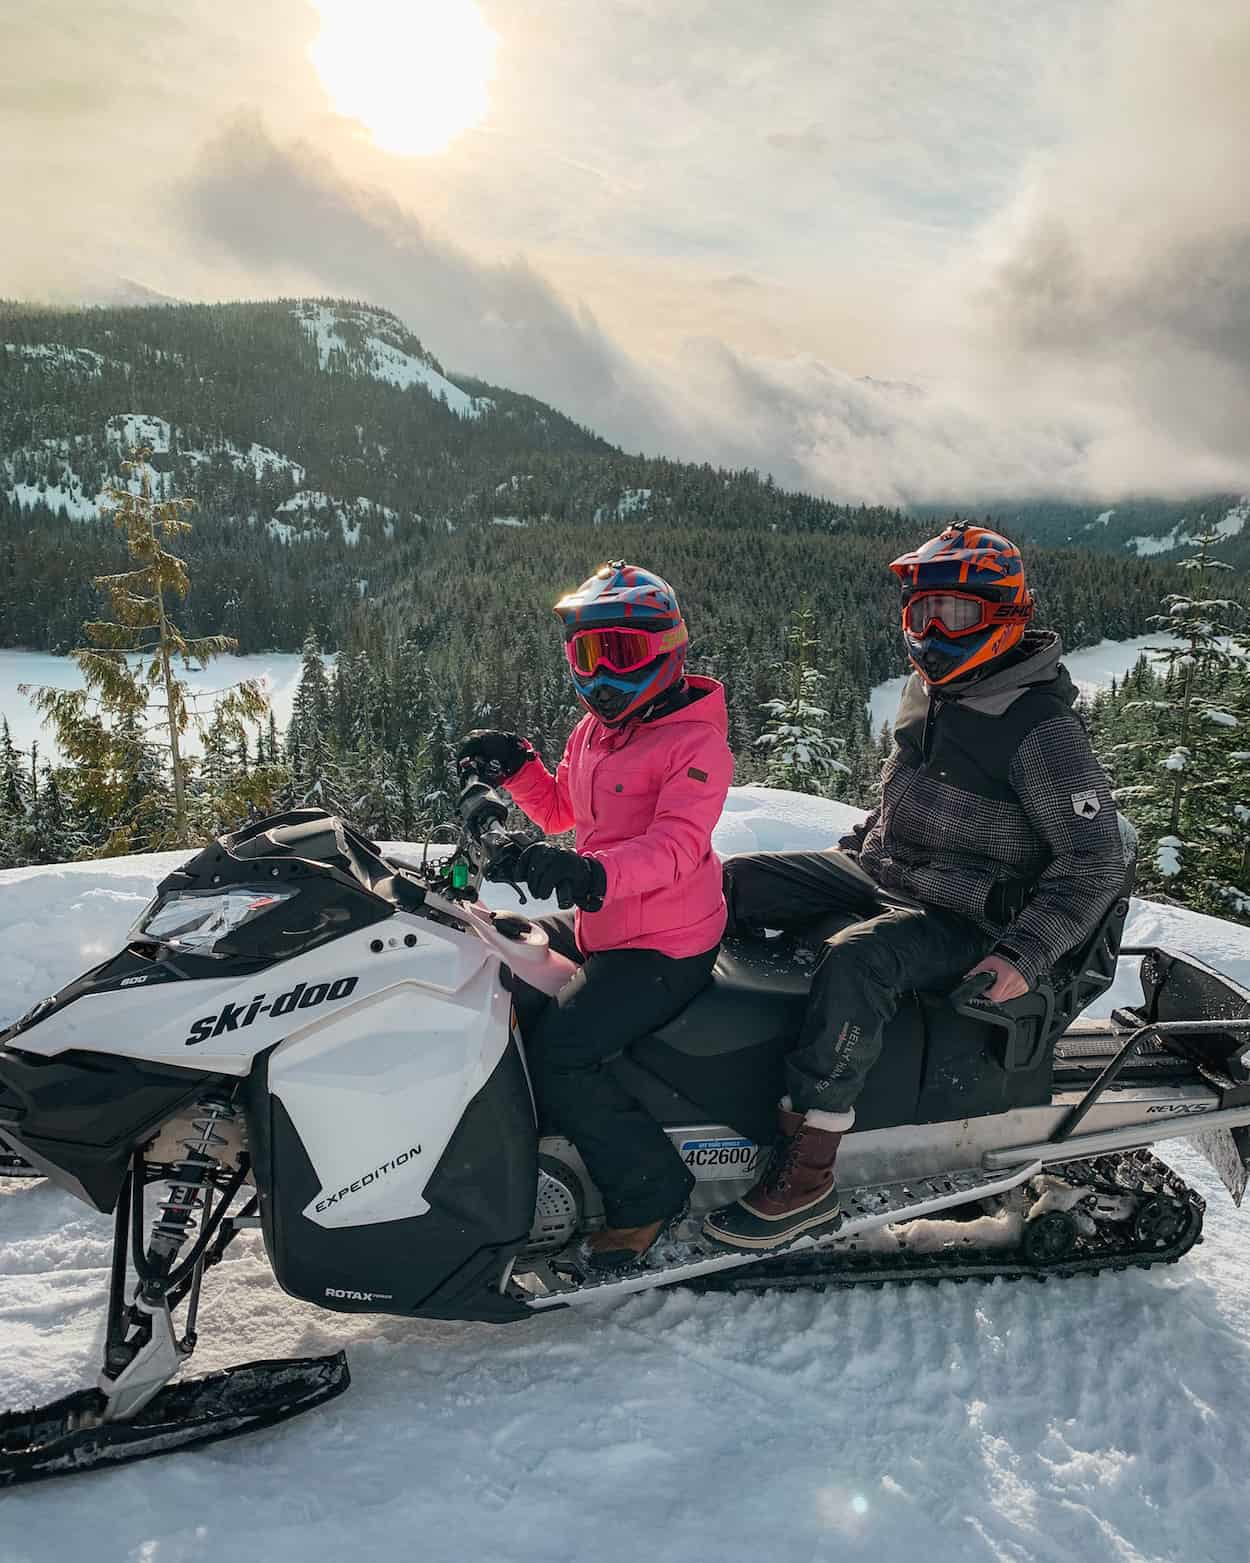 Snowmobile tour with The Adventure Group in Whistler, British Columbia!